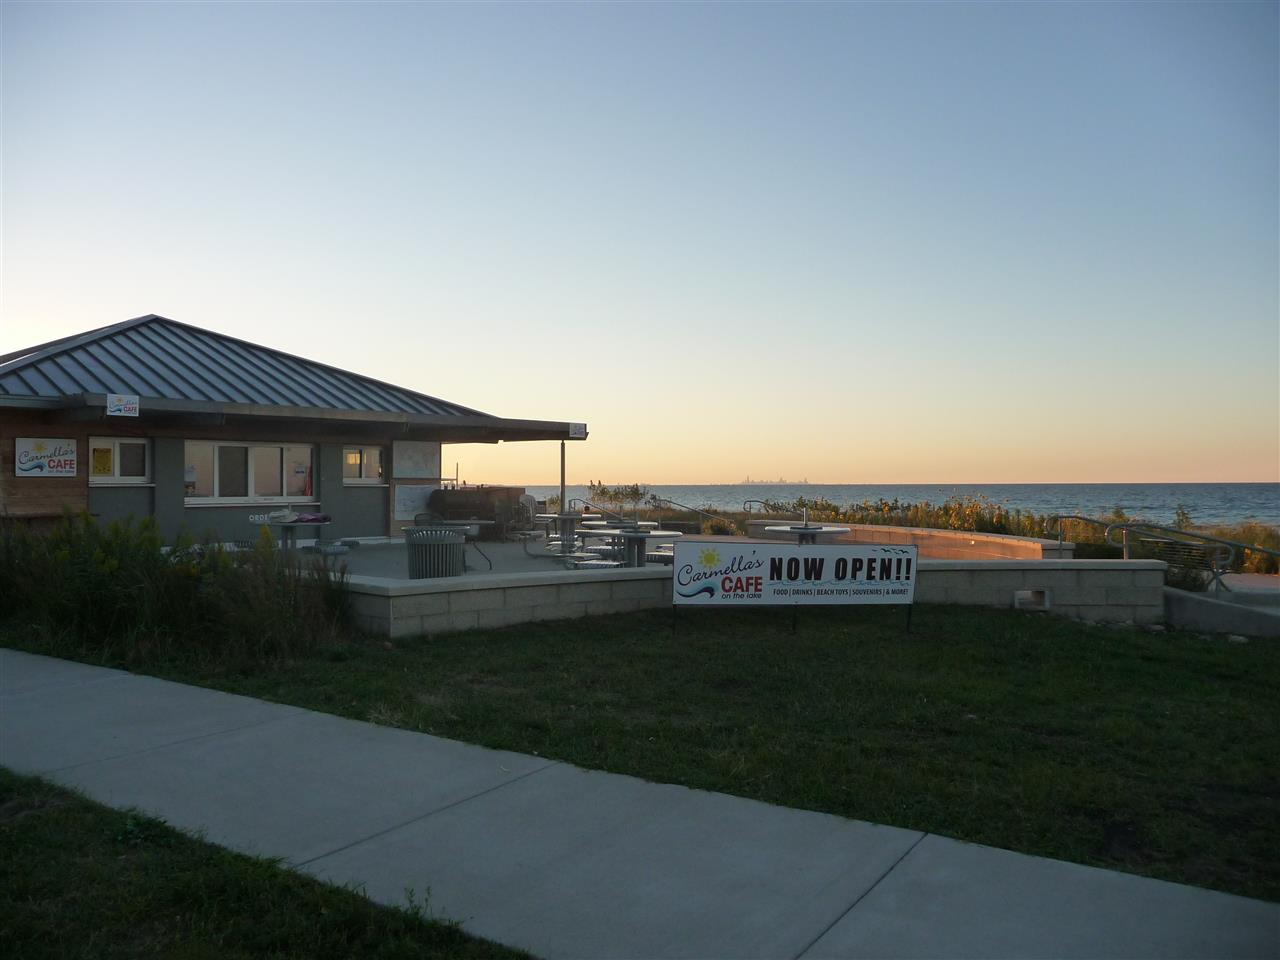 Carmella's Cafe on the Lake Front of the newly renovated Marquette Park in Miller Beach, Lake Michigan, Indiana